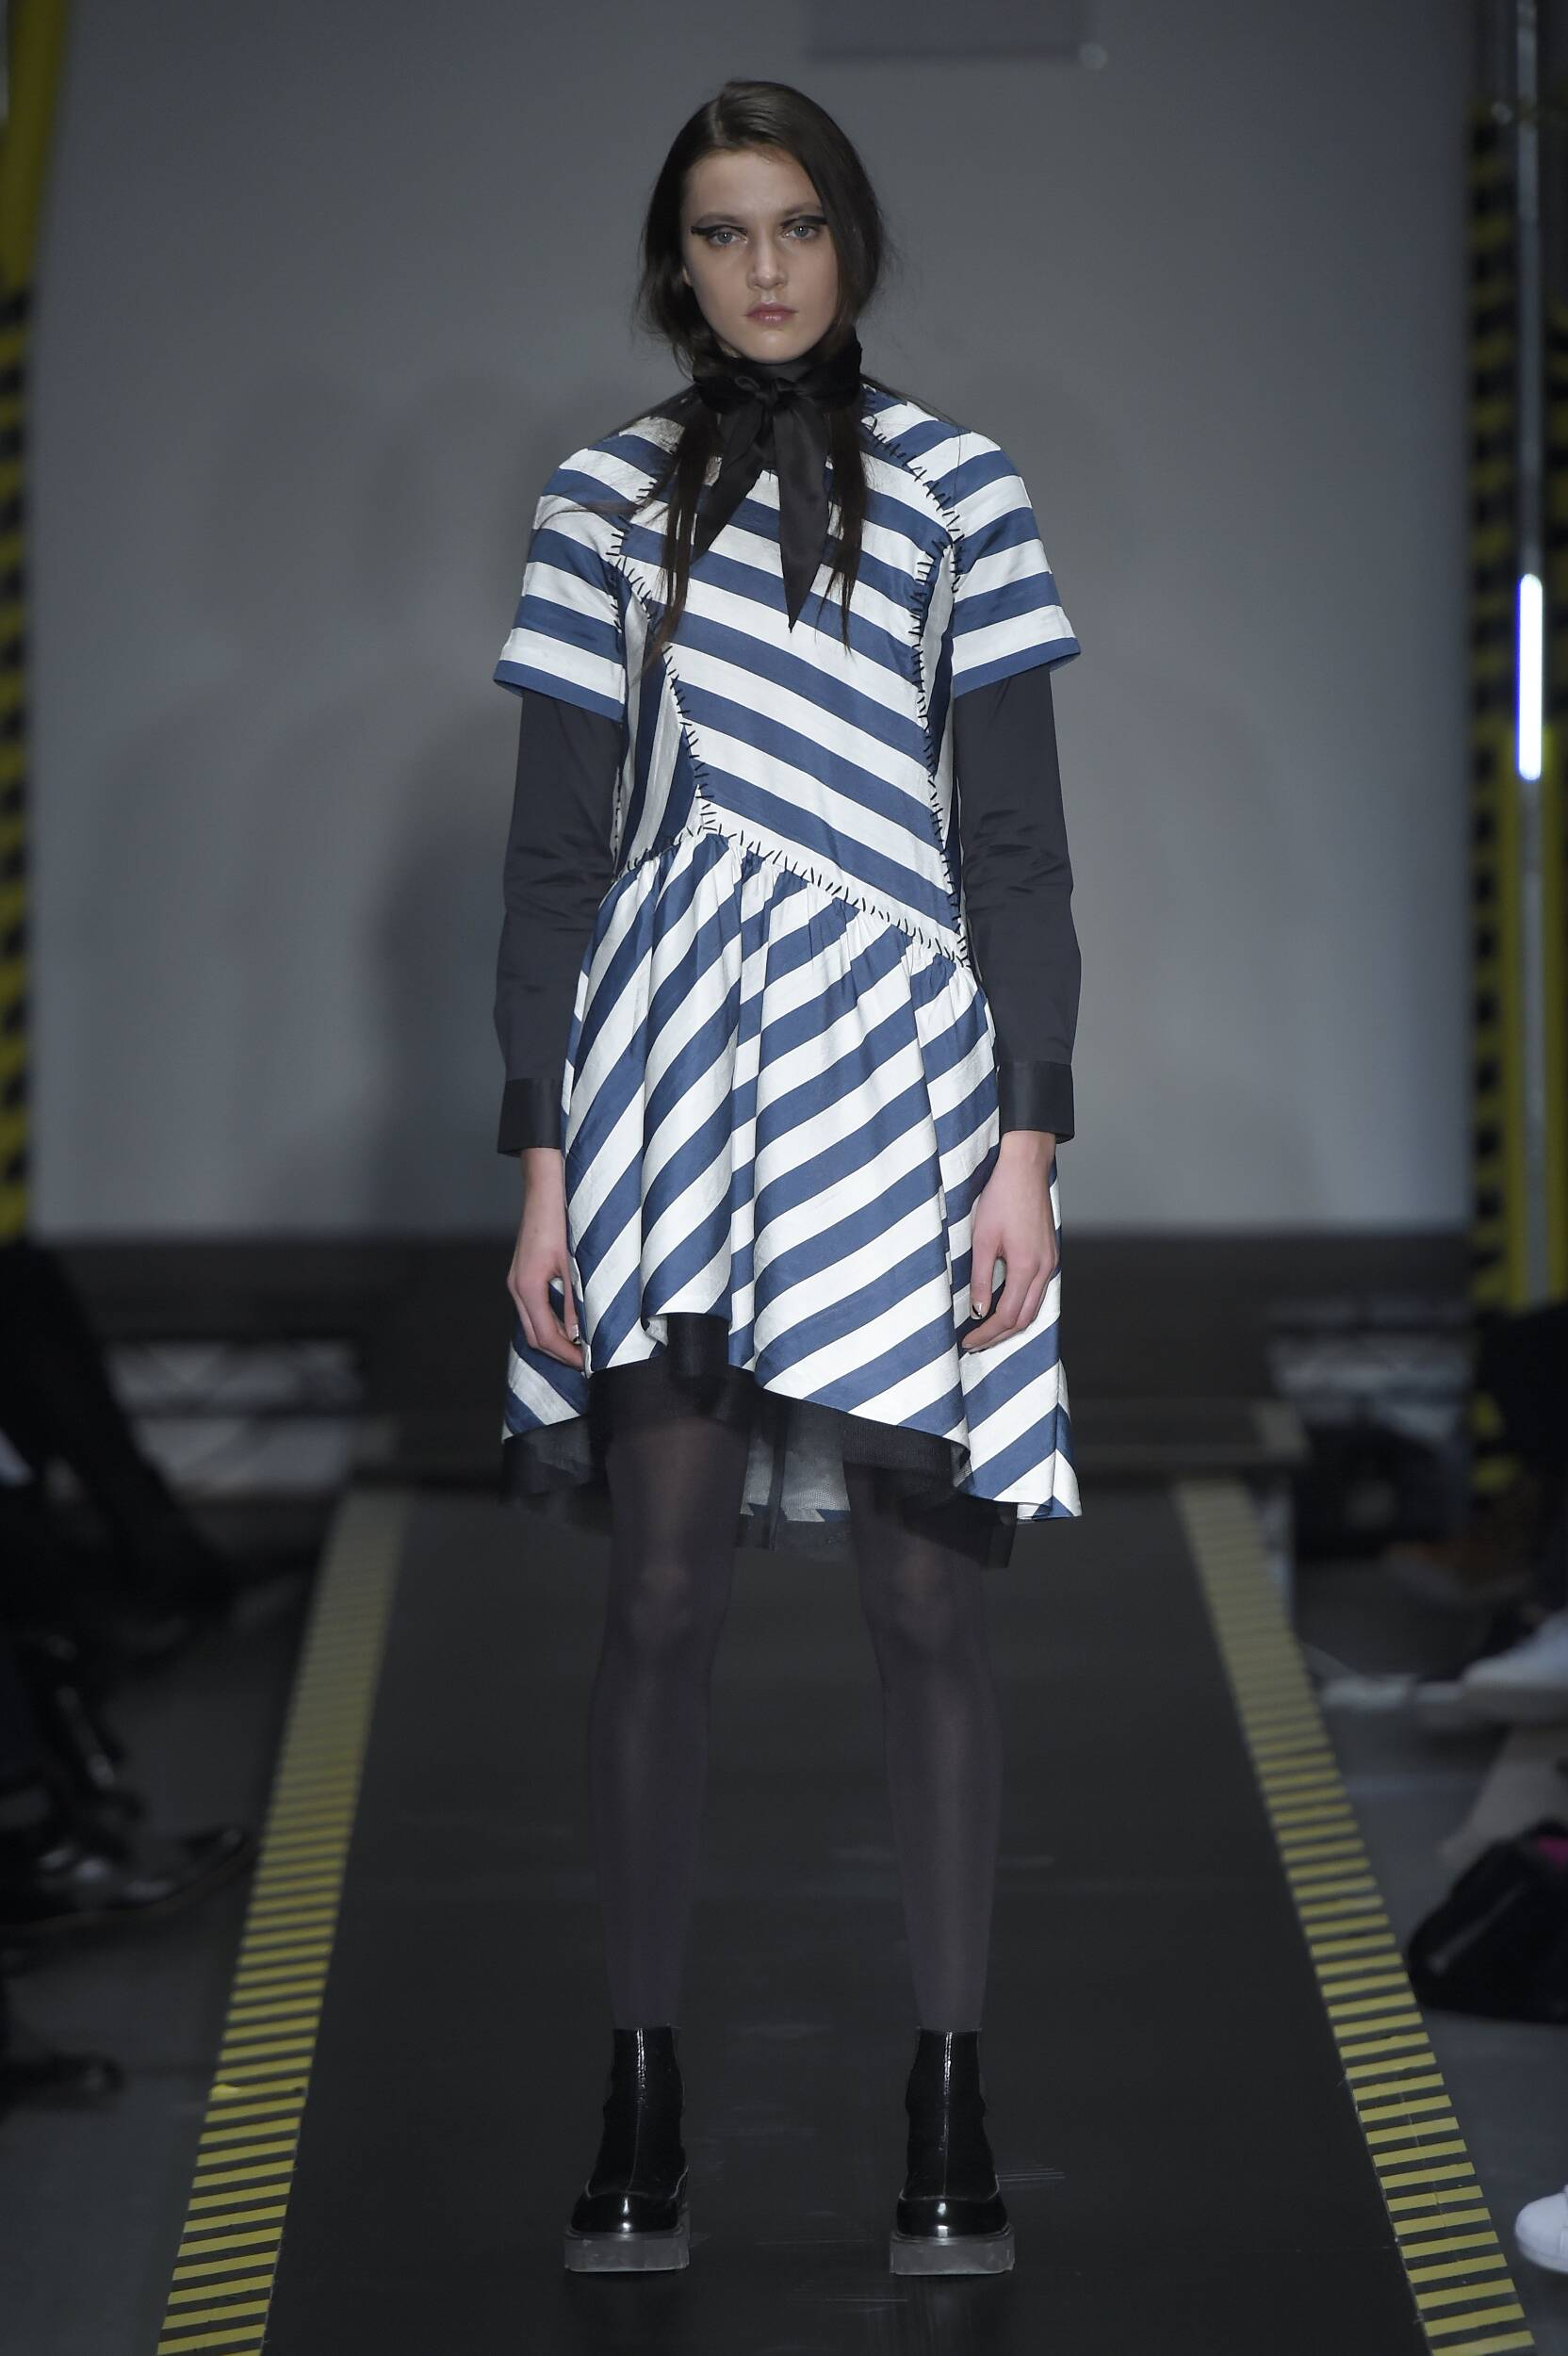 Runway House of Holland Fall Winter 2015 16 Women's Collection London Fashion Week